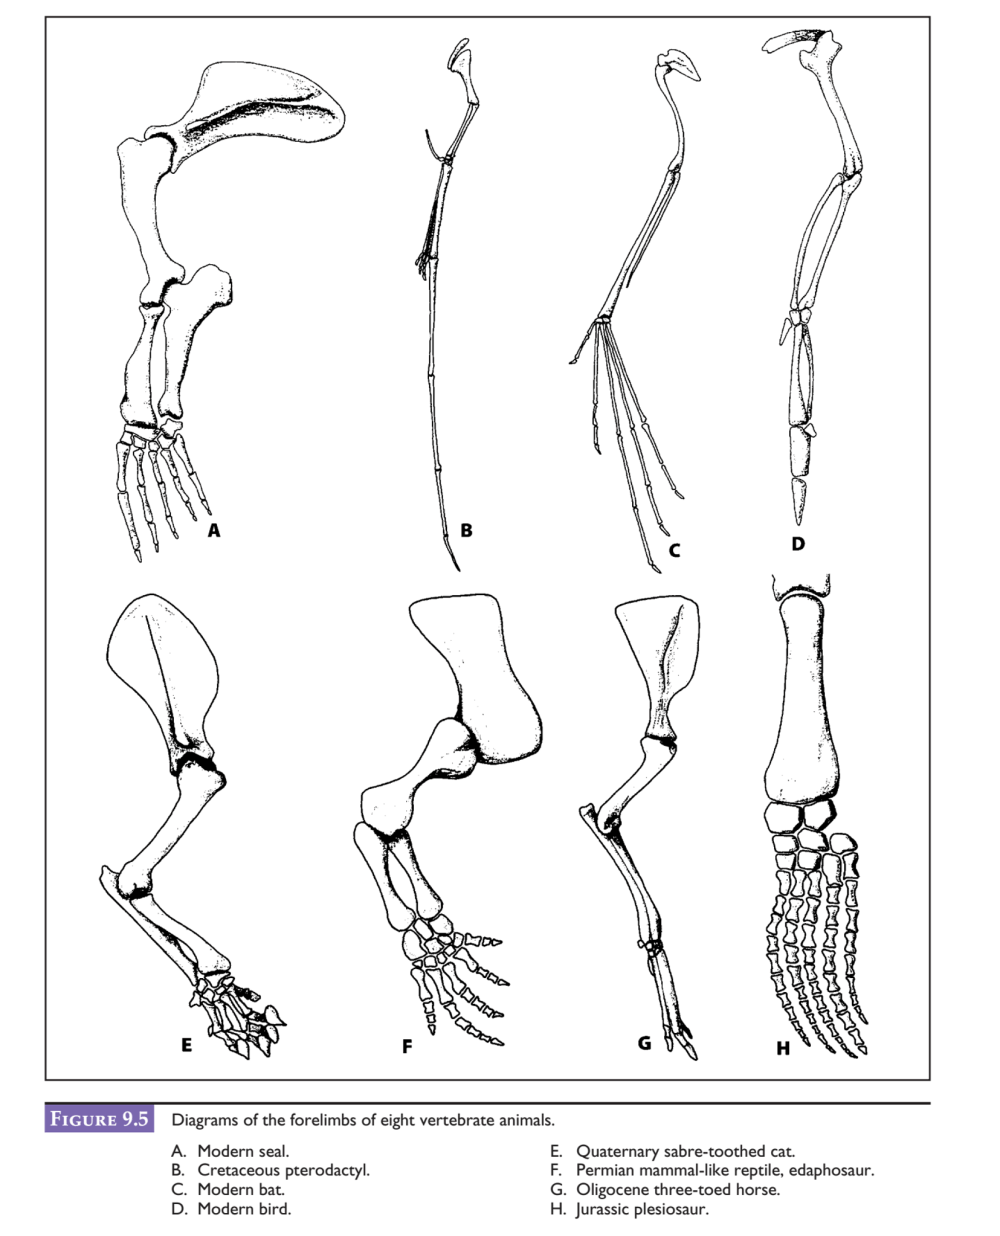 medium resolution of after examining the diagram of a human skeleton in figure 9 4 identify these same skeletal features homologous structures for each of the creatures in